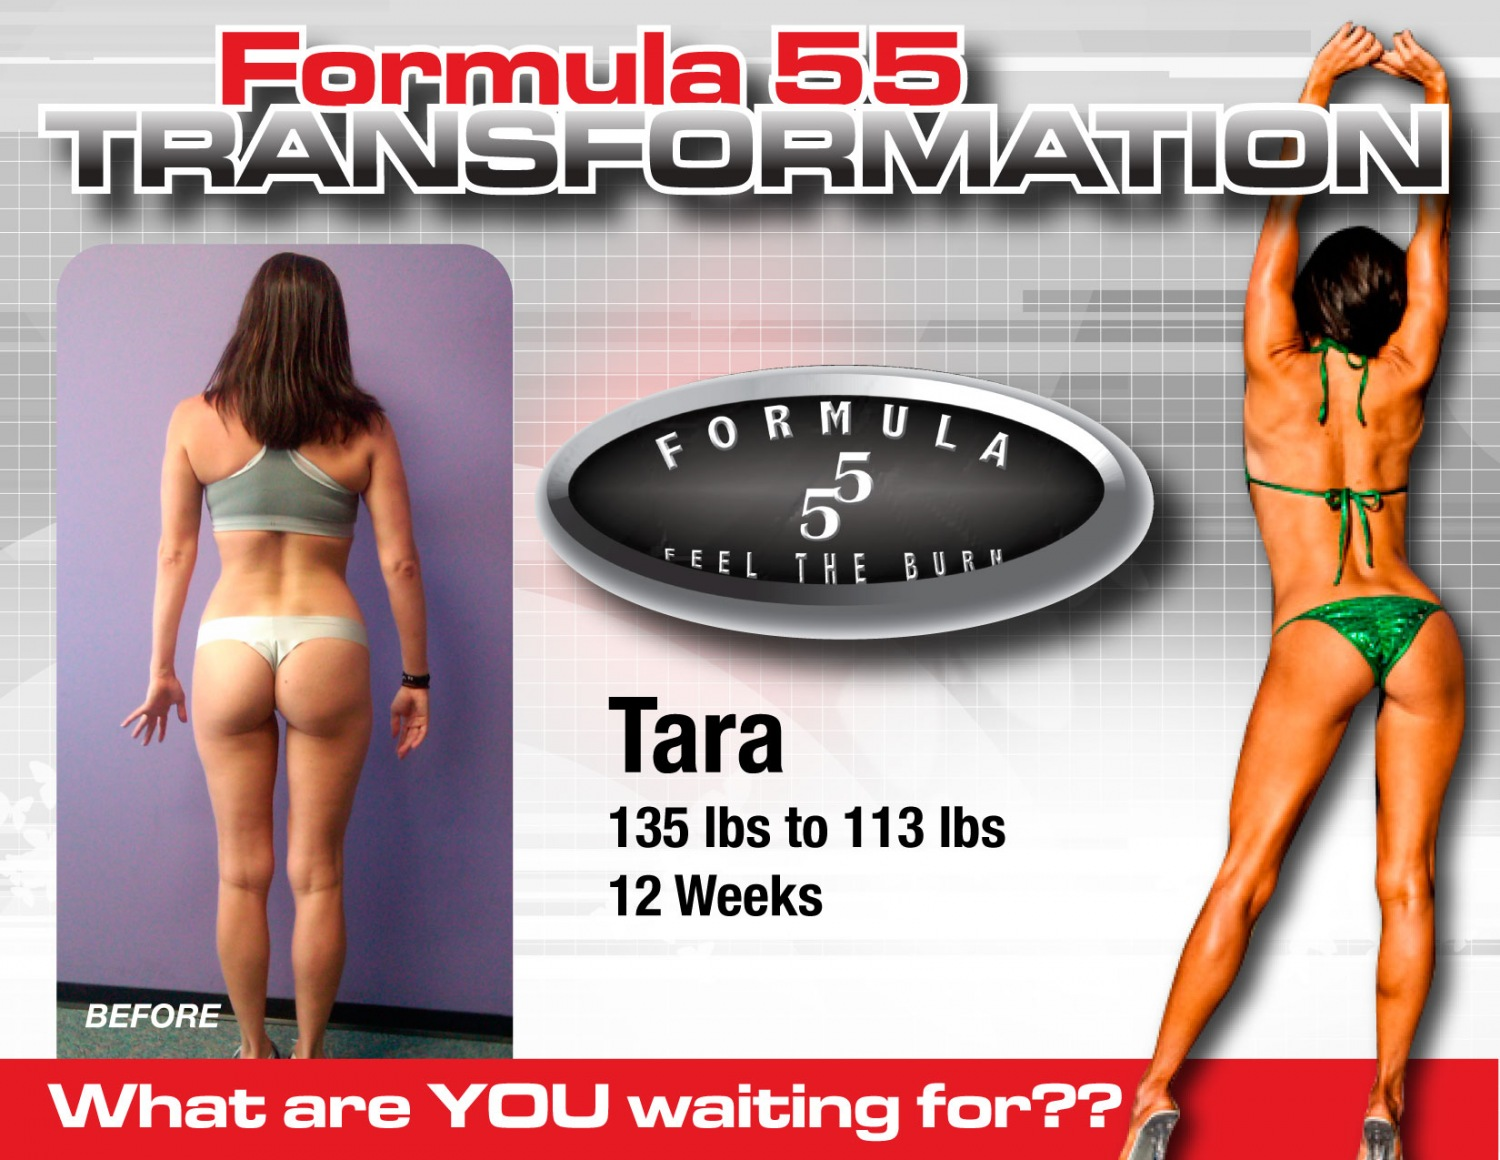 form-55-Transformation-Tara-back.jpg